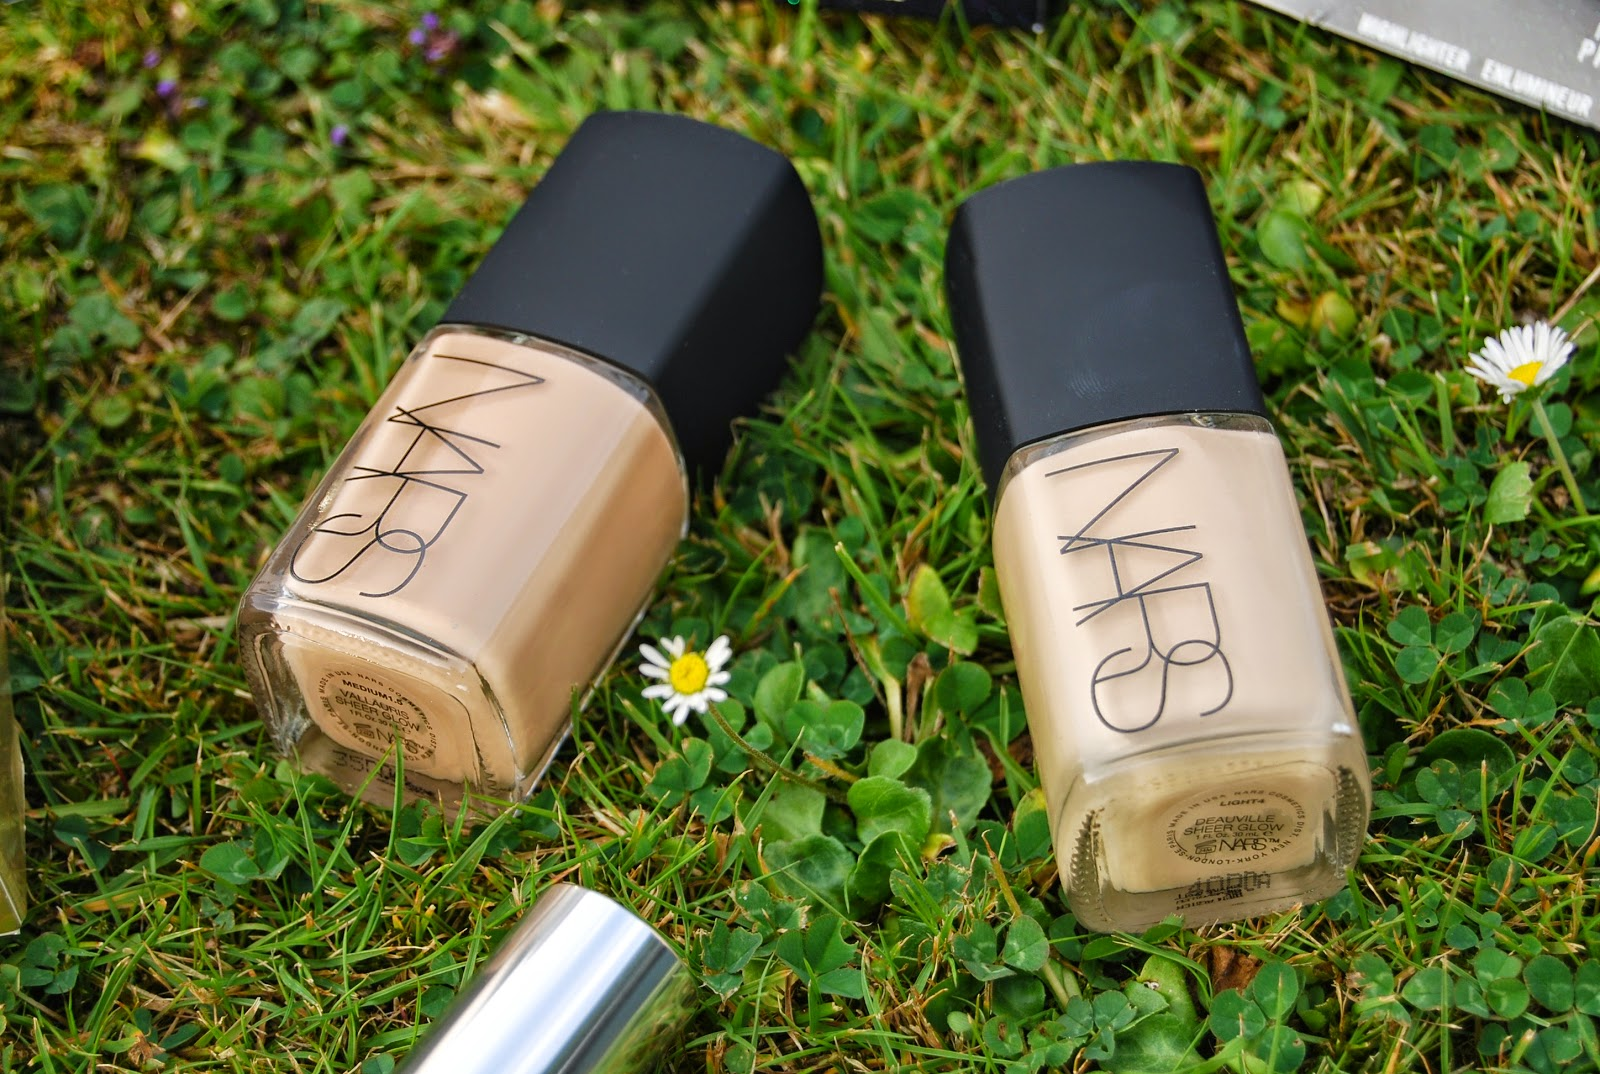 NARS Sheer Glow Foundation in Deauville and Vallauris